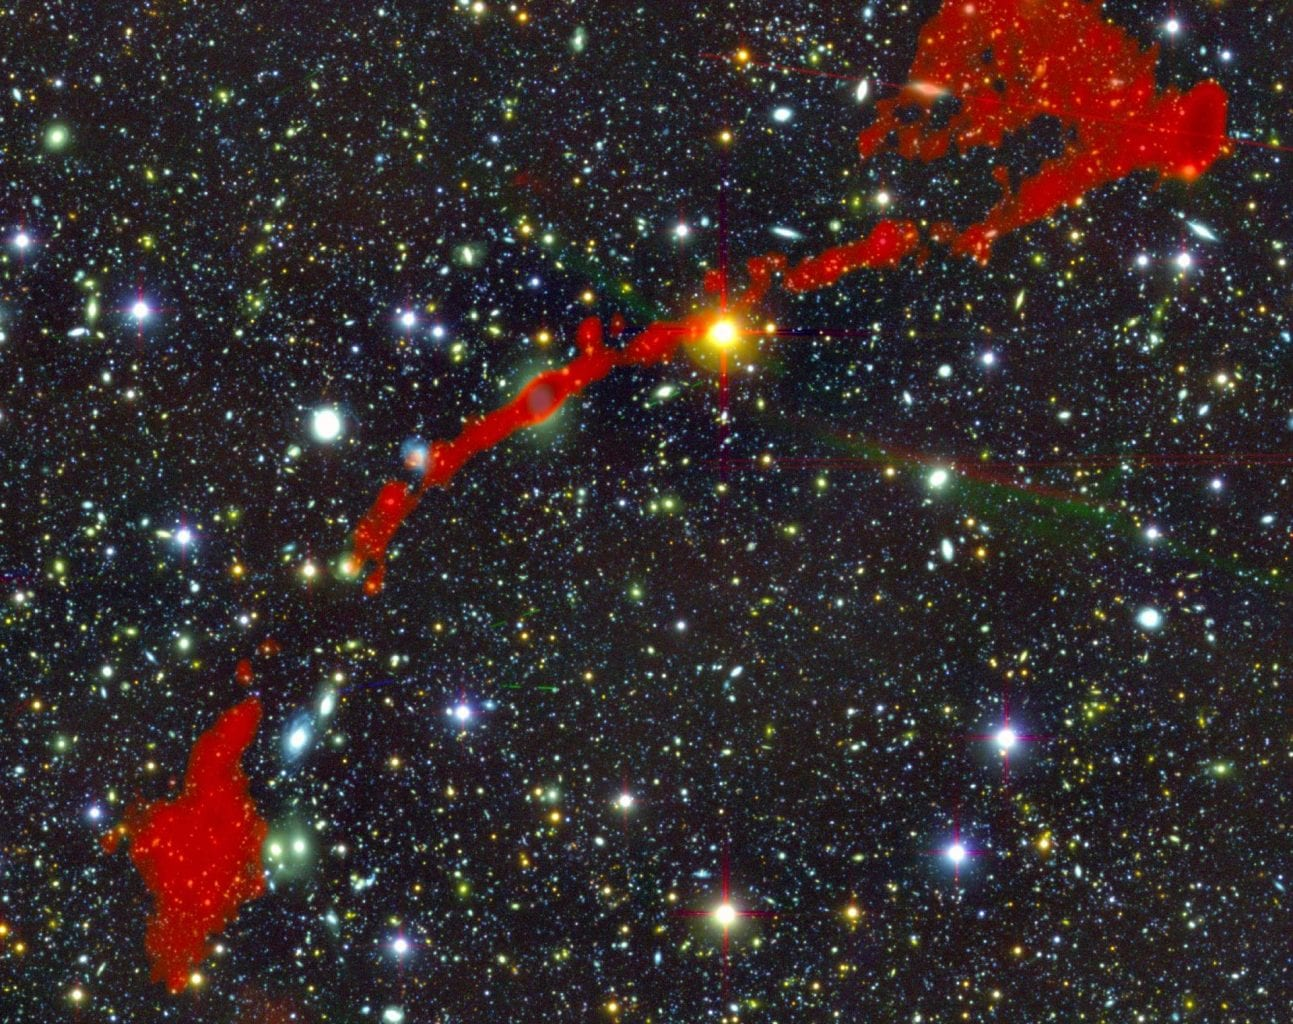 This is the second giant radio galaxy found (MGTC J095959.63+024608.6), once again shown in red with a cosmic background. Credit: I. Heywood, University of Oxford / Rhodes University / South African Radio Astronomy Observatory / CC BY 4.0.